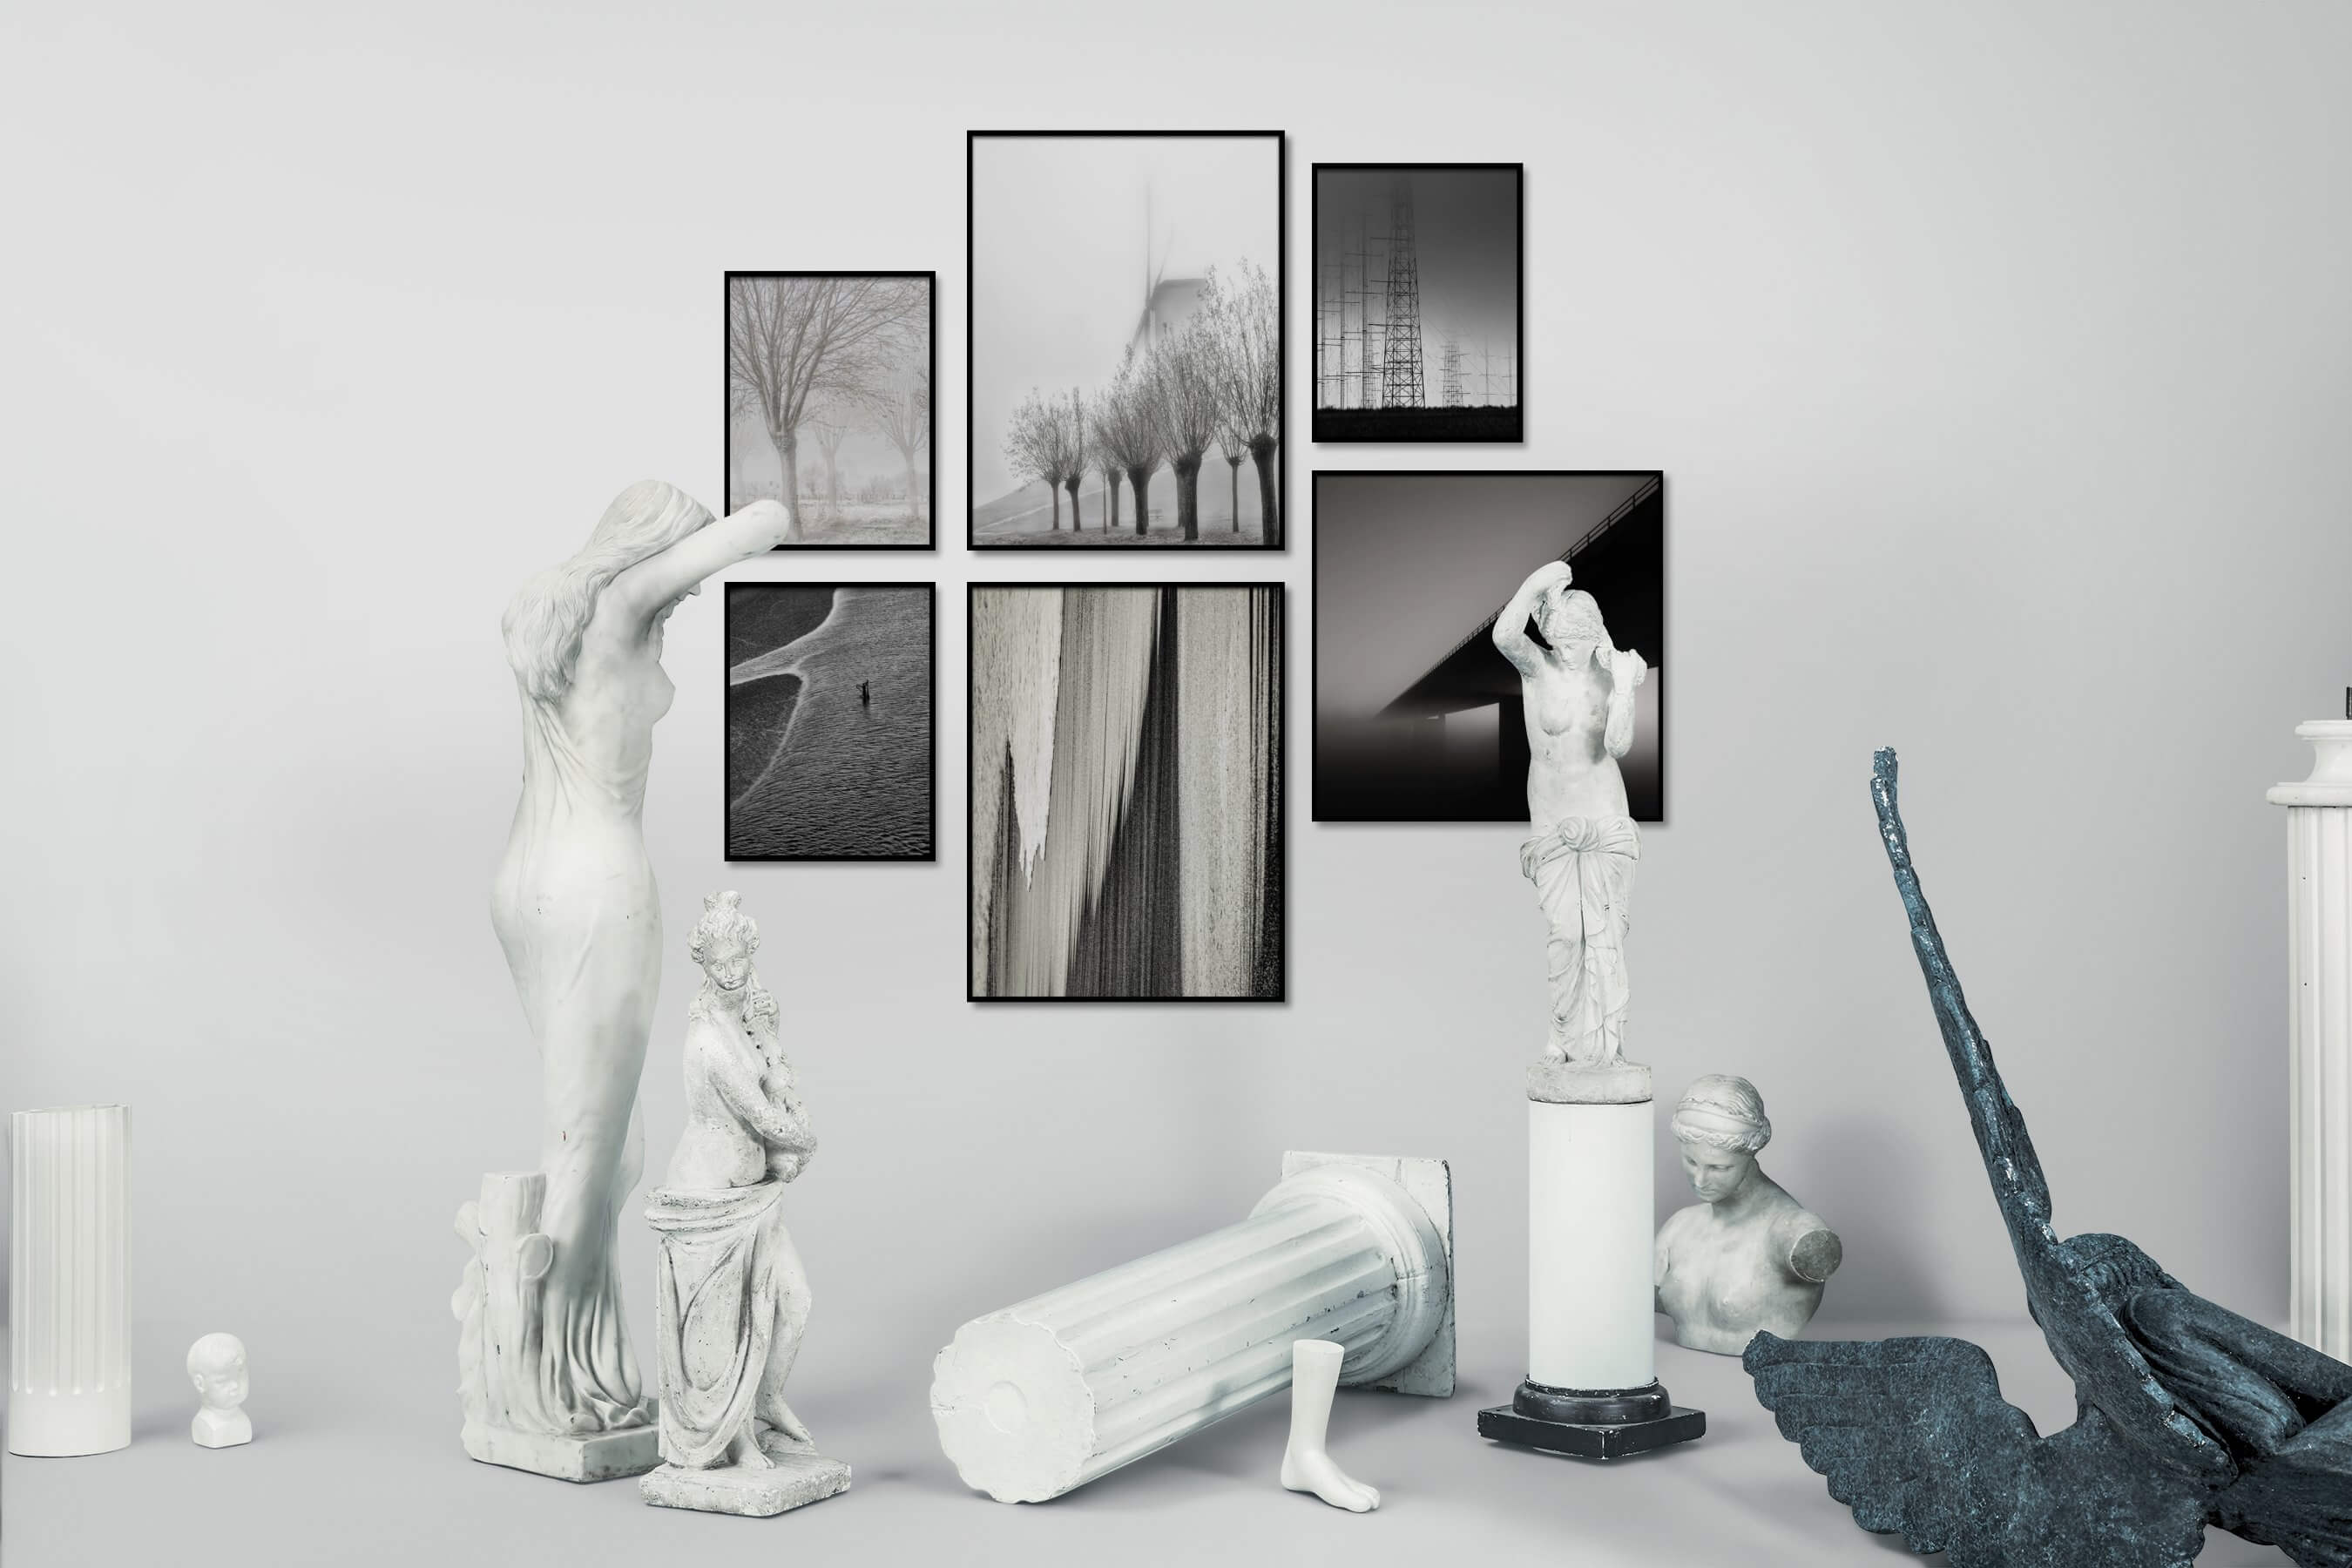 Gallery wall idea with six framed pictures arranged on a wall depicting Country Life, Black & White, For the Moderate, Beach & Water, and For the Minimalist